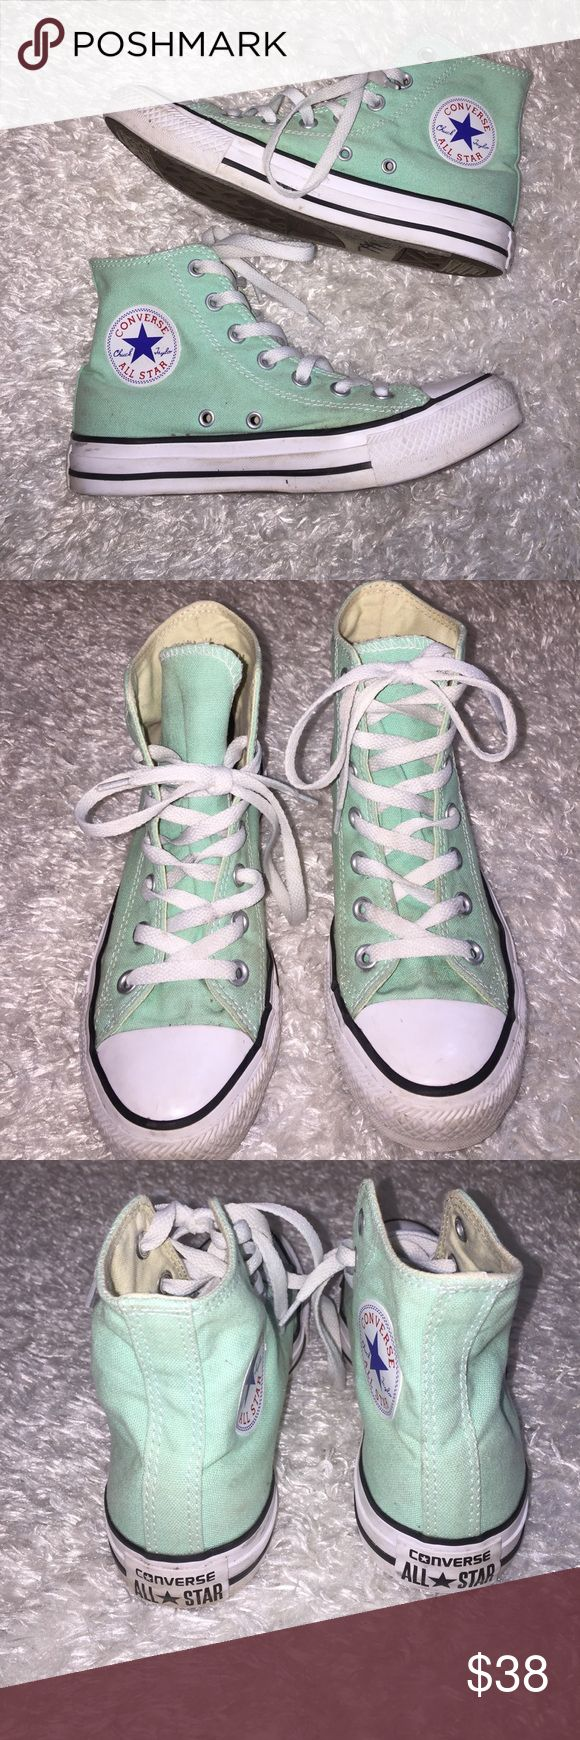 Mint High Top Converse Size 7, in excellent condition worn 2-3x max. Feel free to ask any questions! No trades sorry, && offers thru offer button only! I do not discuss prices in comments  Converse Shoes Athletic Shoes